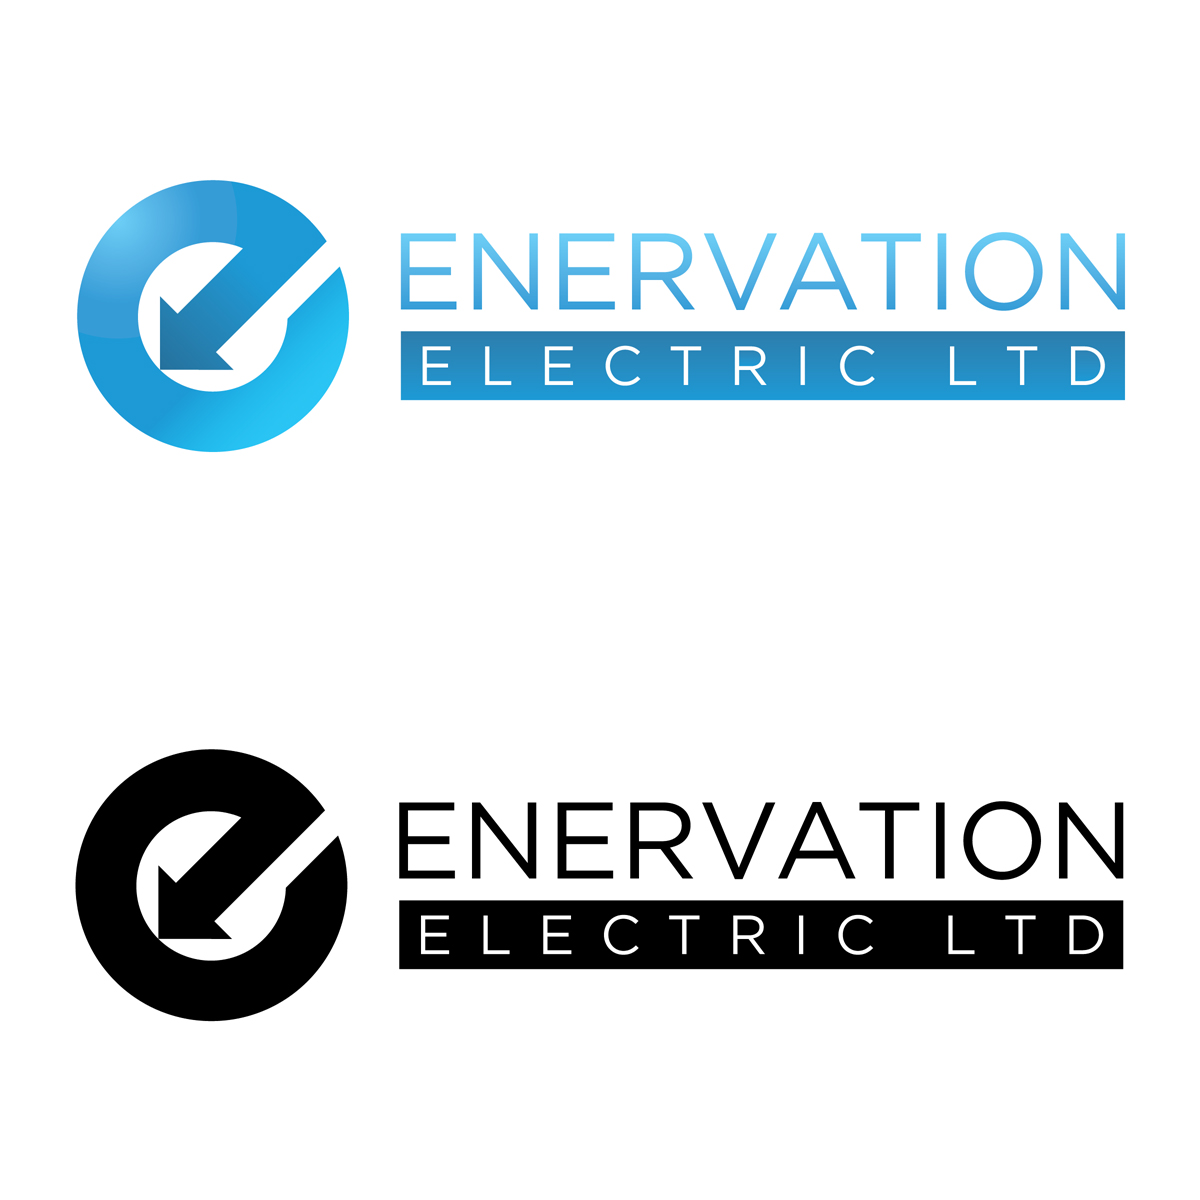 Business Card Design by jhannigan - Entry No. 157 in the Business Card Design Contest Enervation Logo Design.